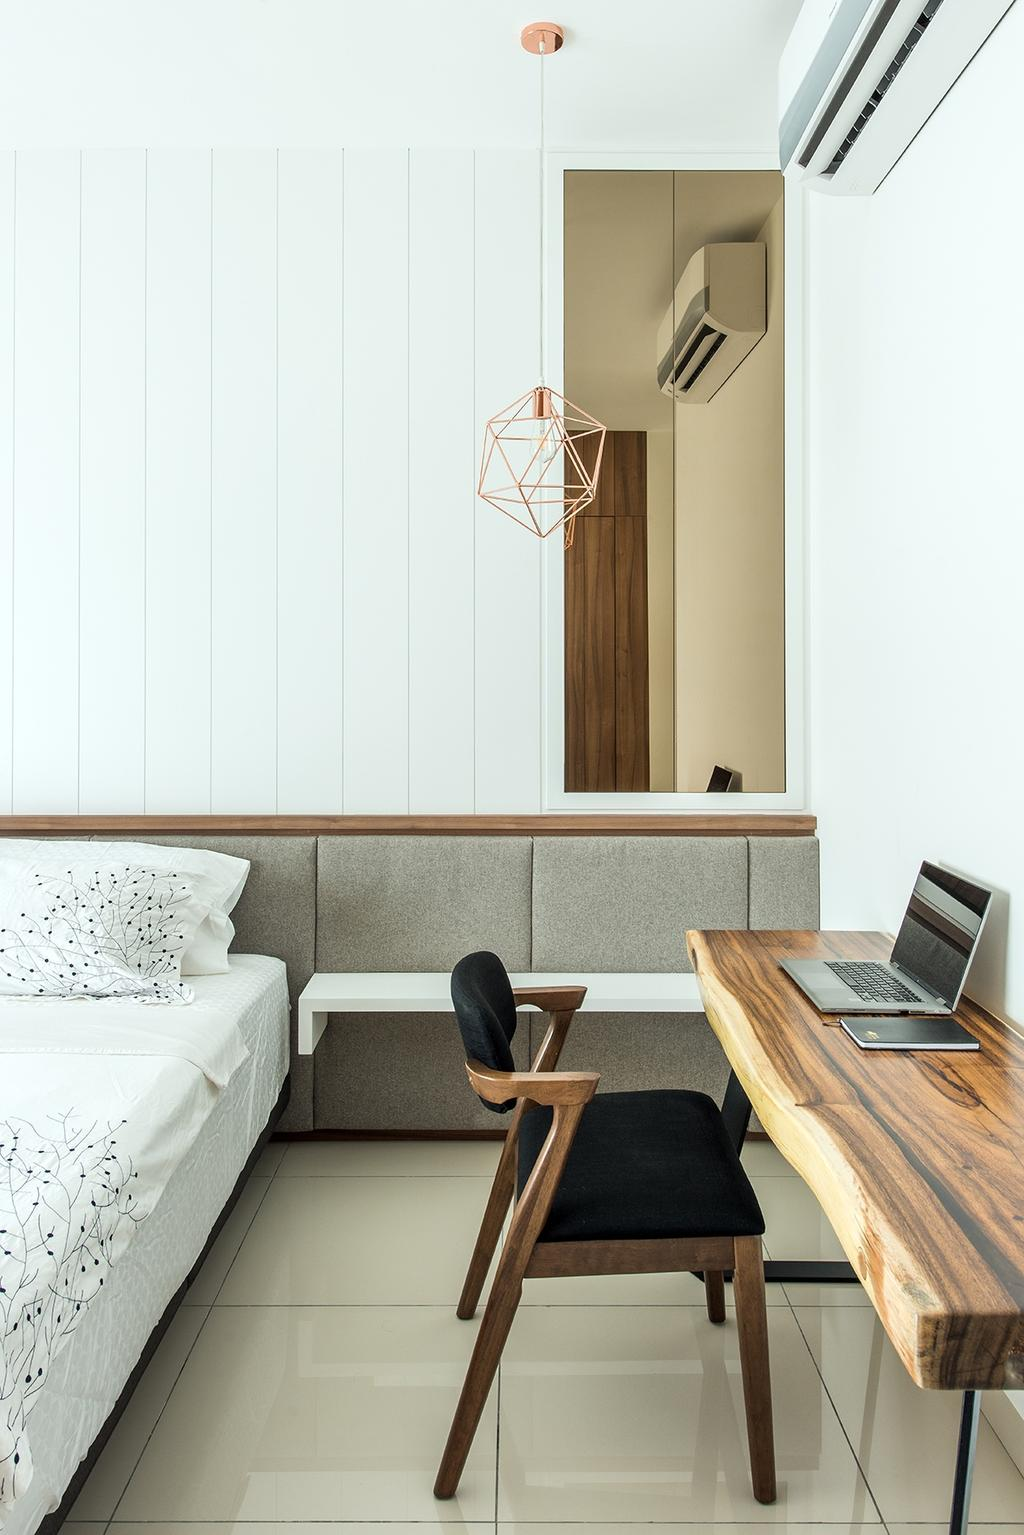 Minimalistic, Landed, Bedroom, Stafford, Setia Eco Glades, Interior Designer, Pocket Square, Computer, Electronics, Laptop, Pc, Chair, Furniture, Couch